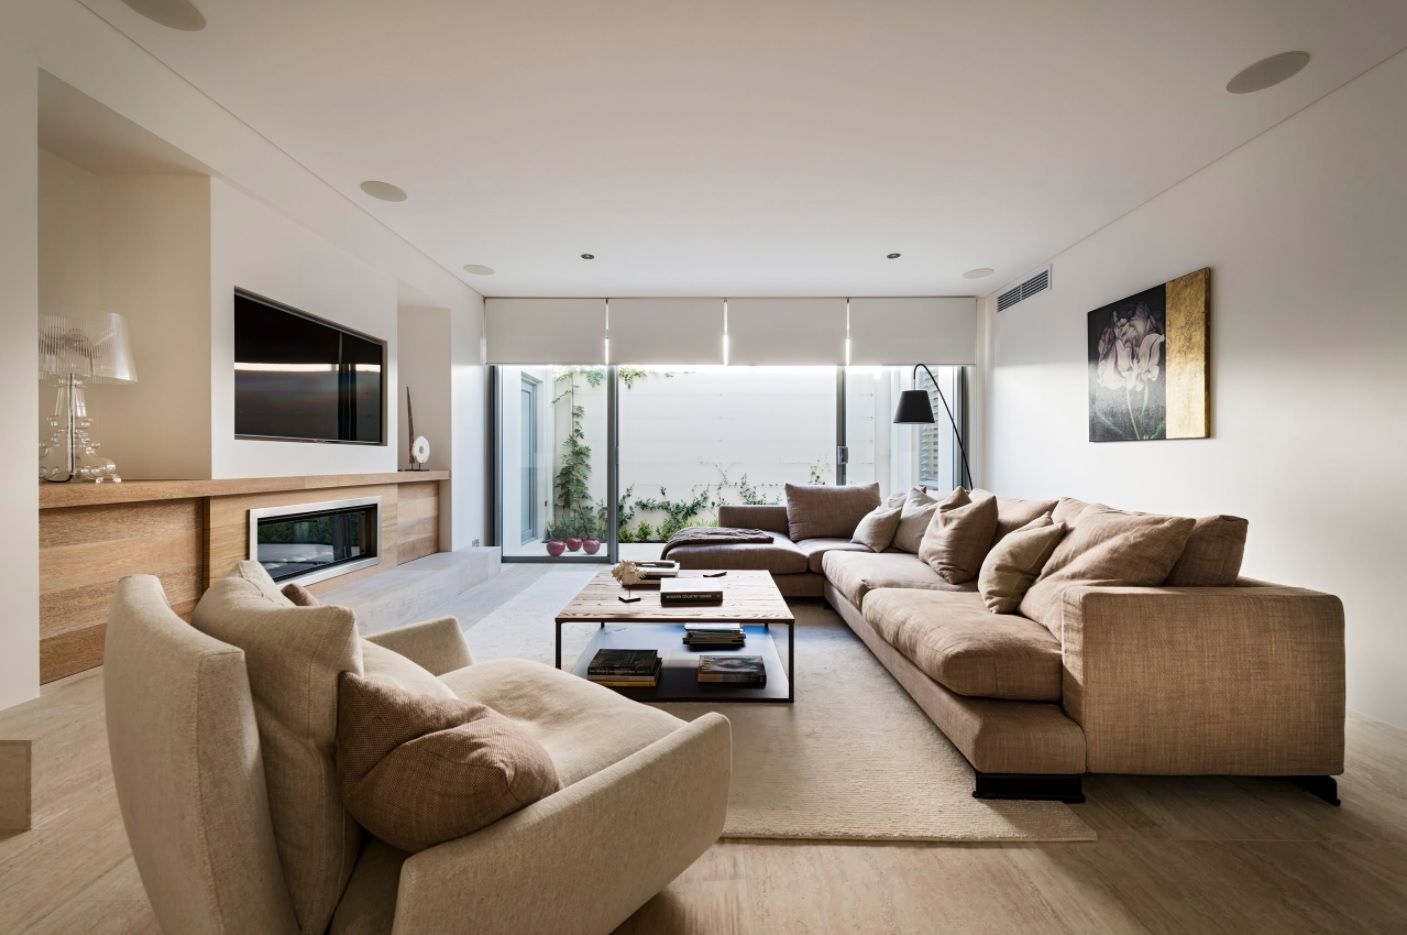 Brown upholstered sofas in the lounge room with metal framed coffee table